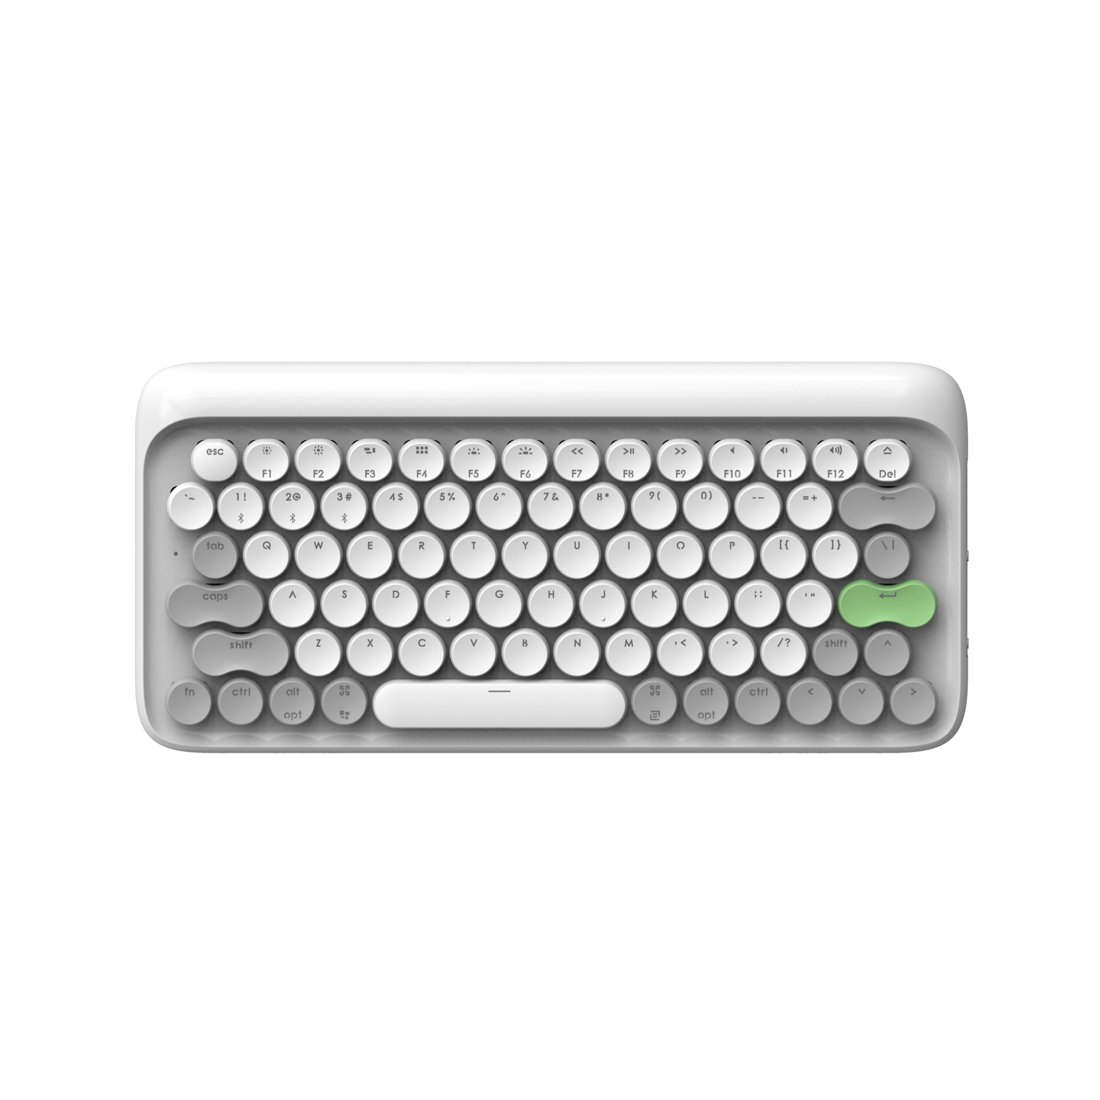 Wireless Mechanical Keyboard, LOFREE Four Seasons Mac Mechanical Keyboard with Gateron Blue Switch/White LED Backlit/Rechargeable Battery,Bluetooth Vintage Keyboard for MacOS,iOS,Windows,Android by LOFREE